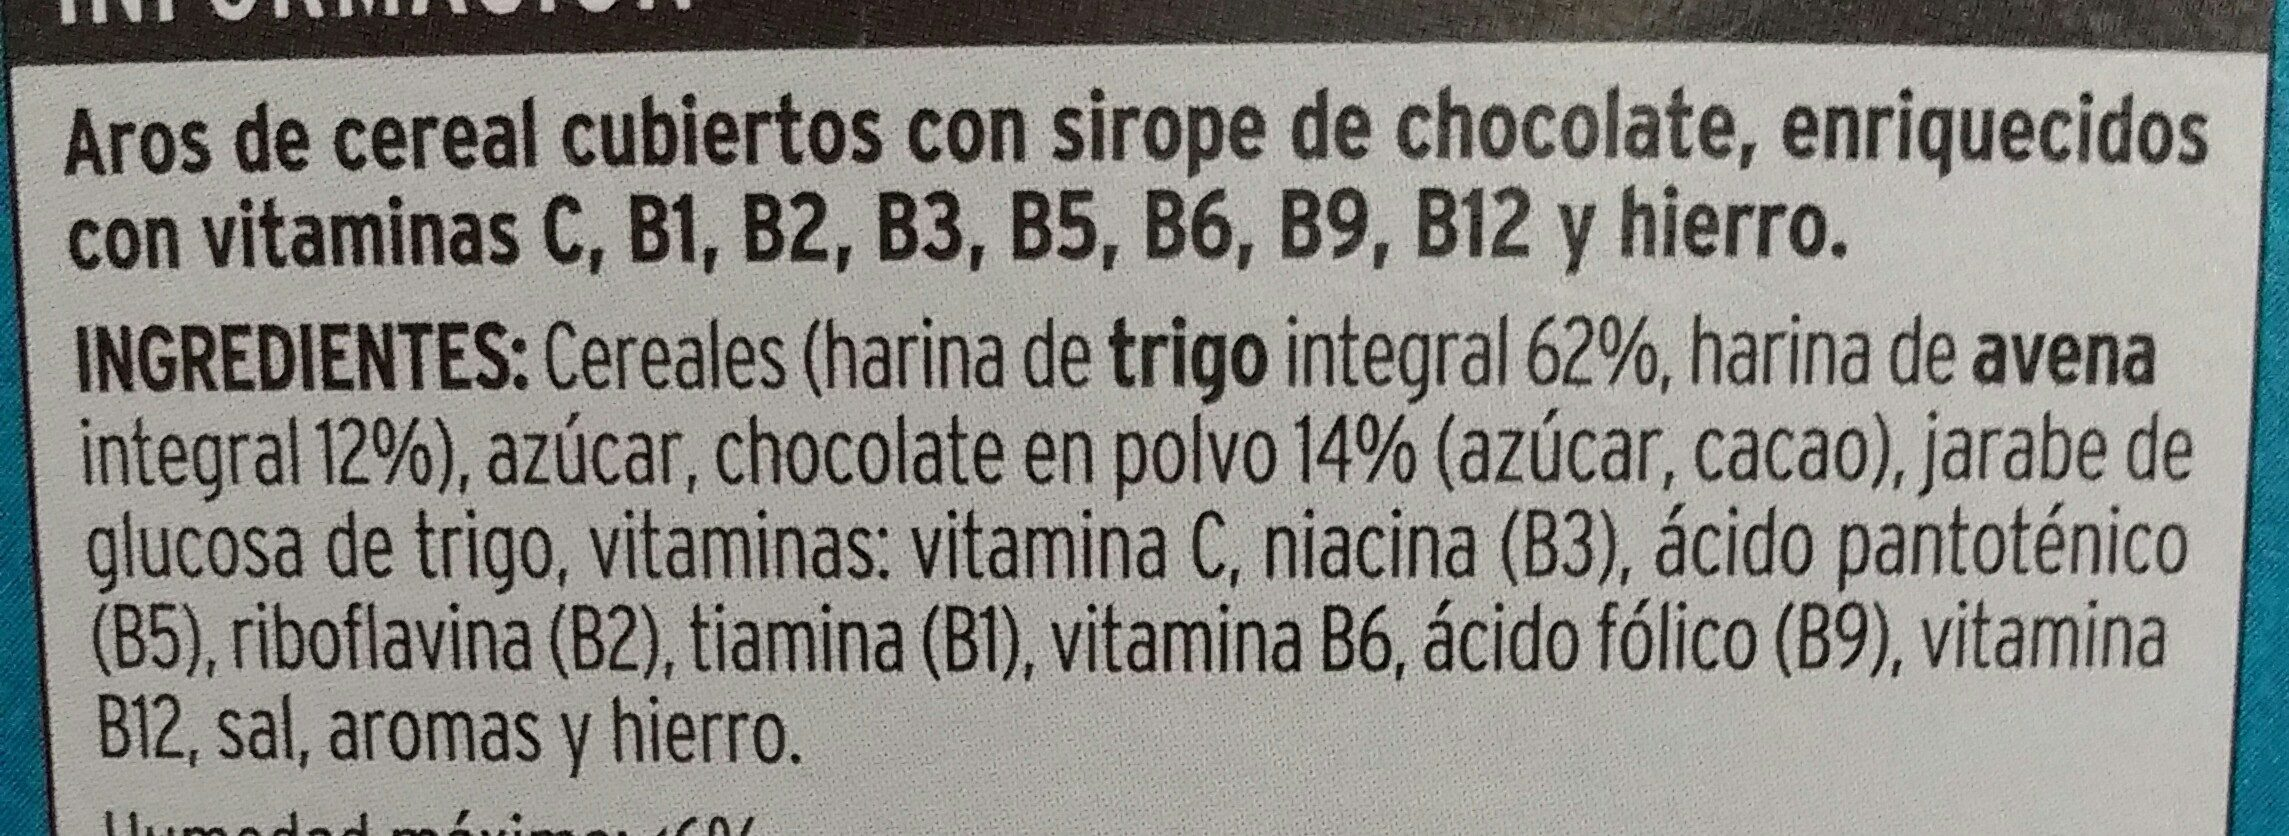 Hula chocs - Arroz de trigo y avena con chocolate - Ingredientes